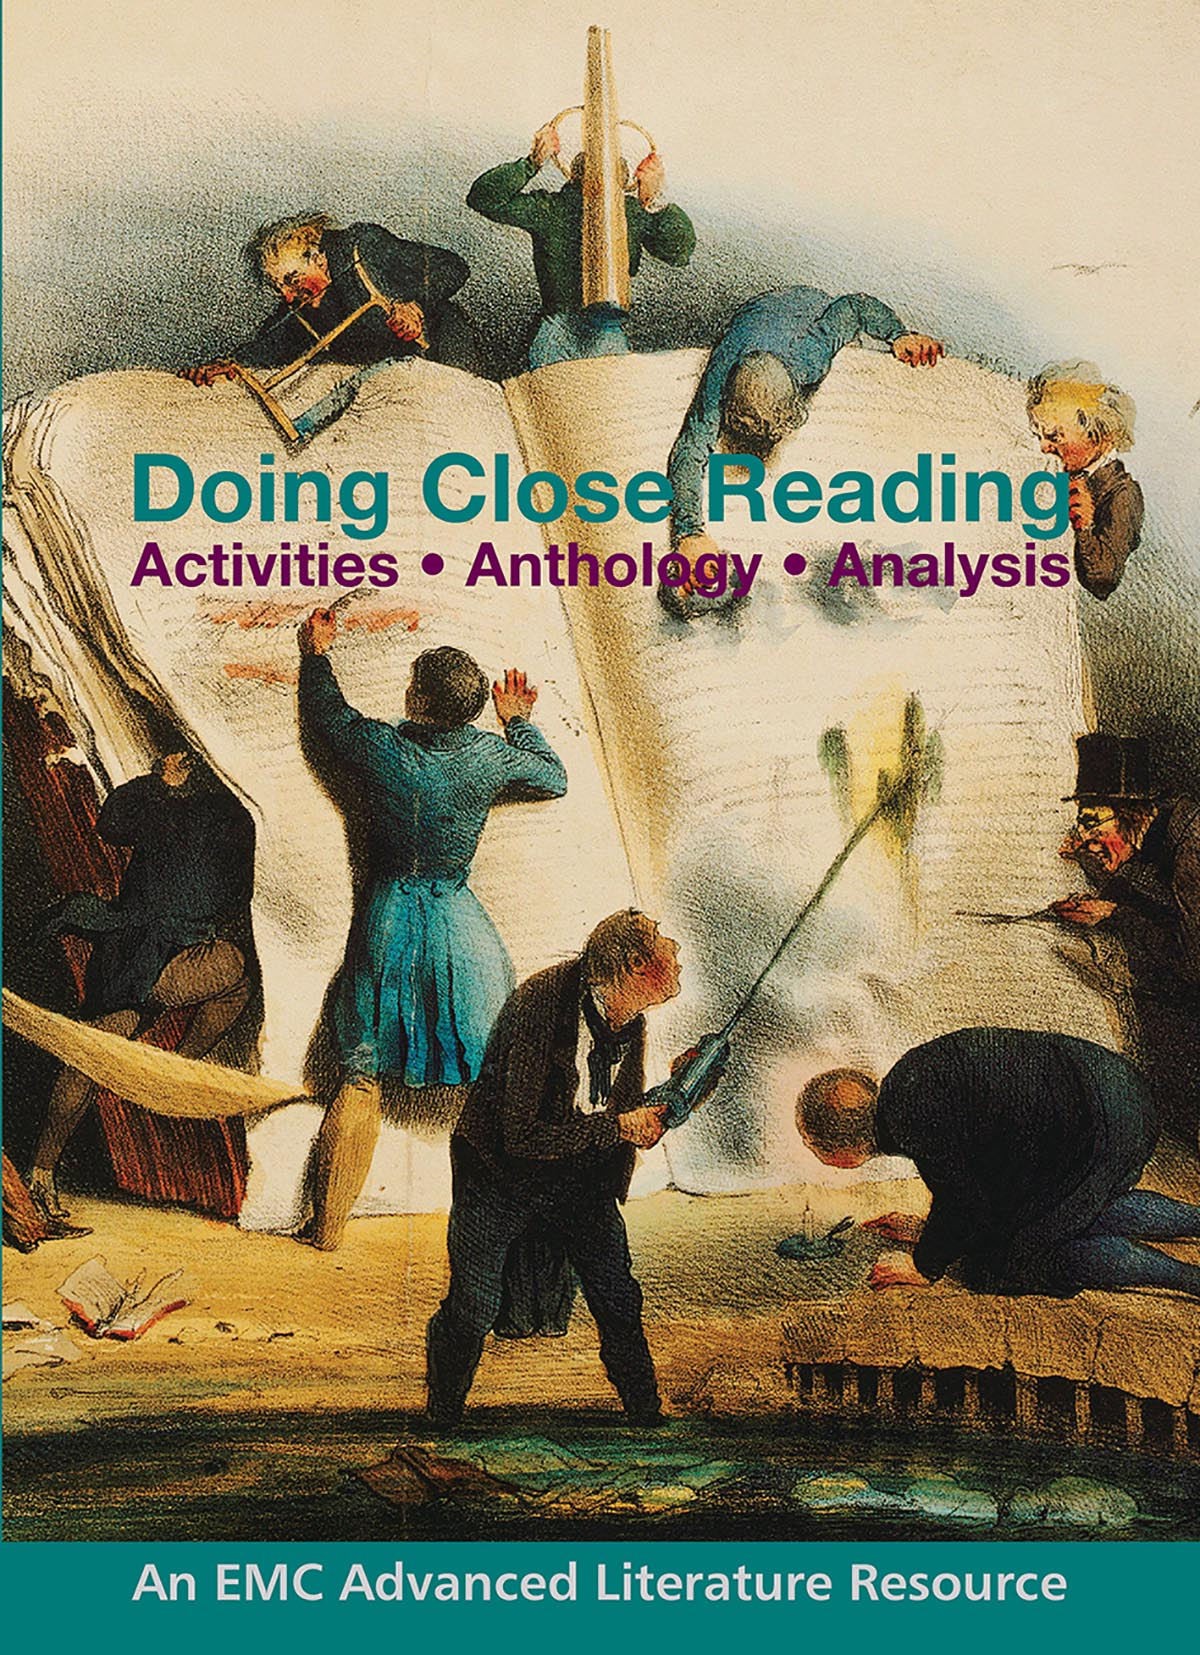 Cover image for Doing Close Reading (Print) – EMC SALE 2020 – 40% off